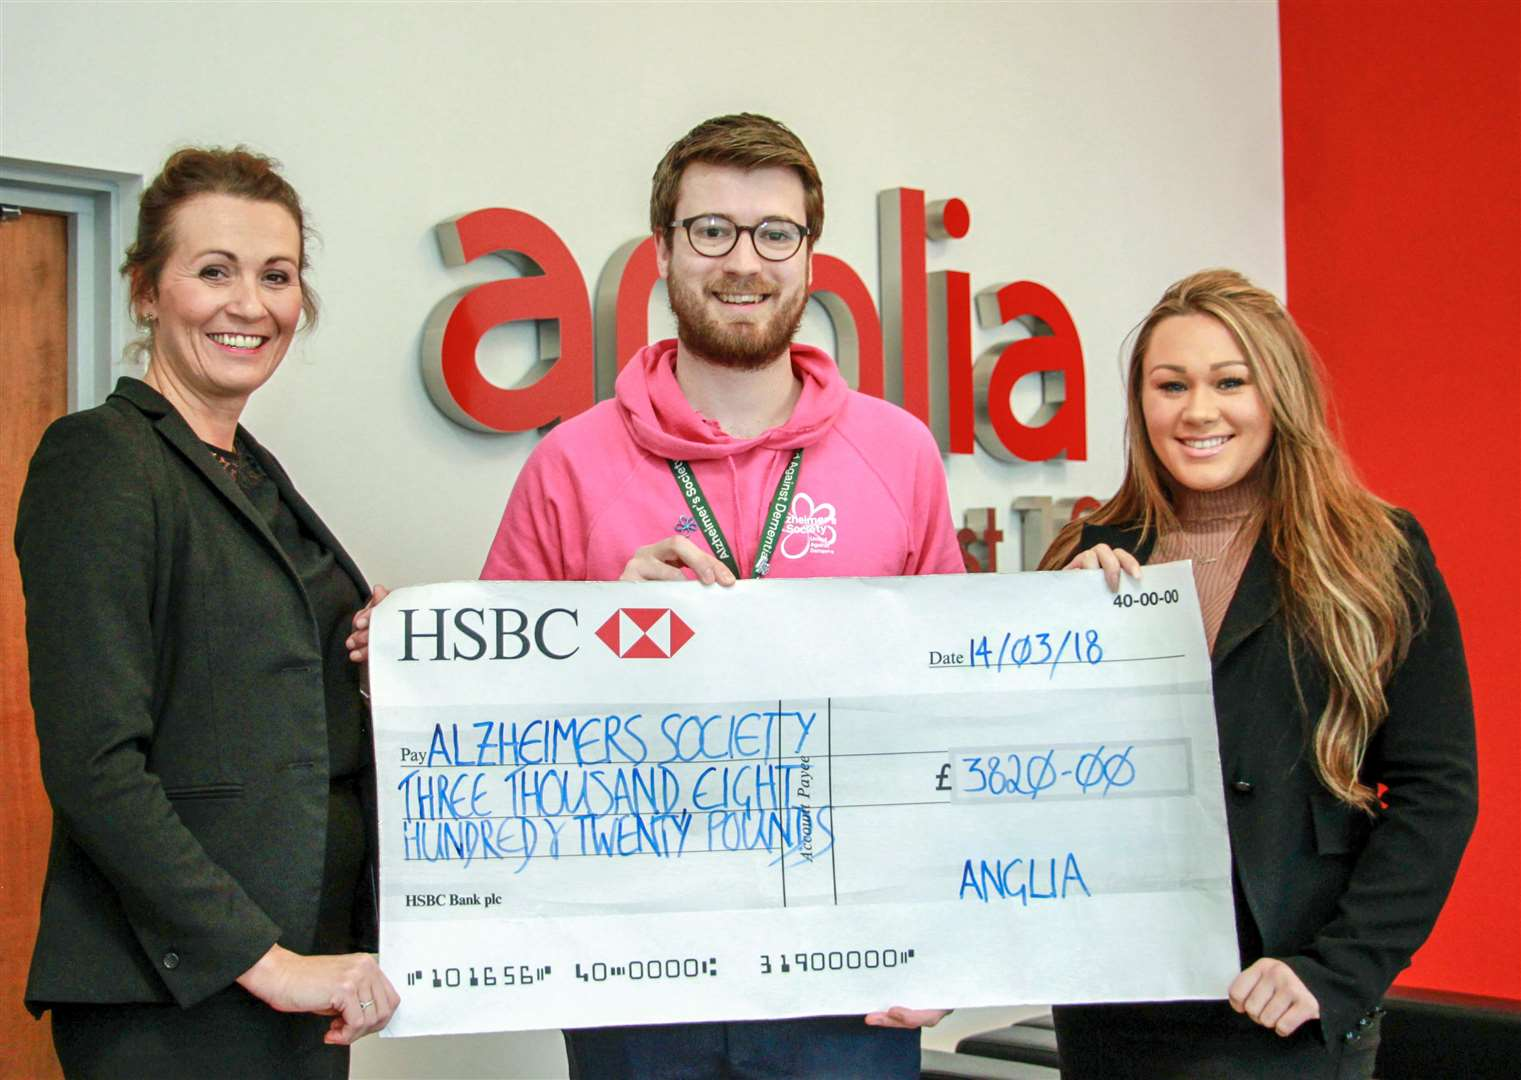 From left: Hayley Waltham (Anglia) Jordan Hughes, (Alzheimer's Society) and Gina Mason (Anglia). (2103346)